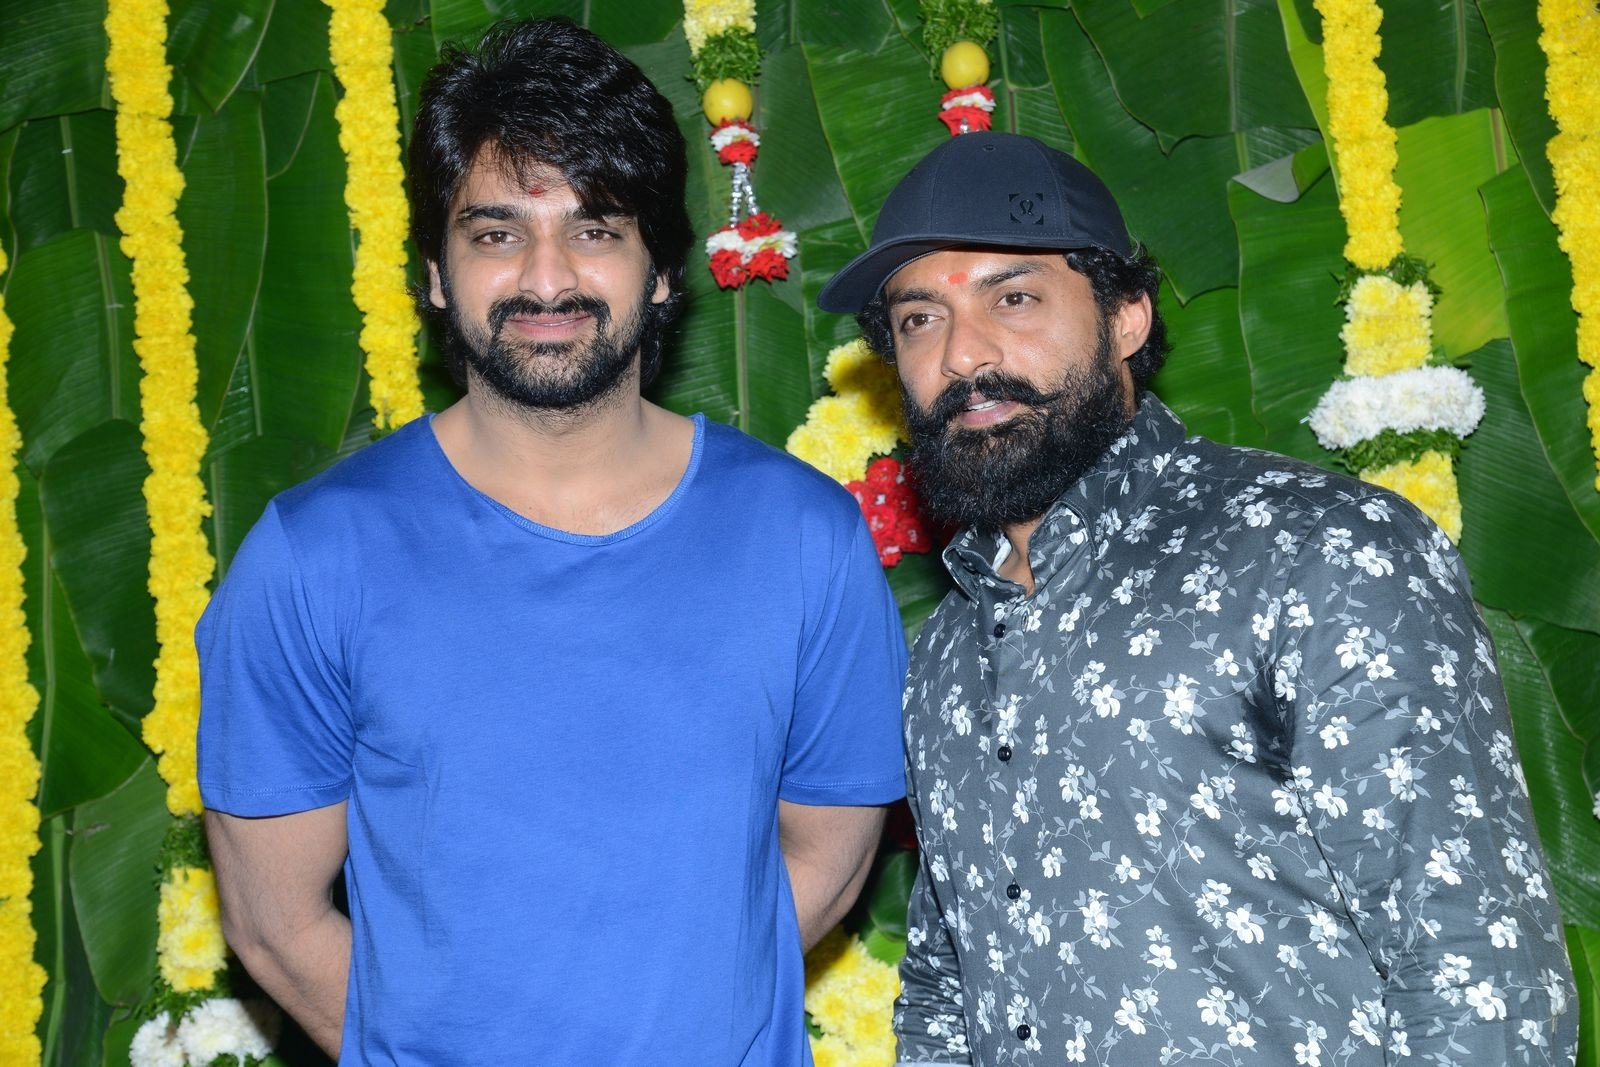 1-<p>Nagashaurya's new film</p>